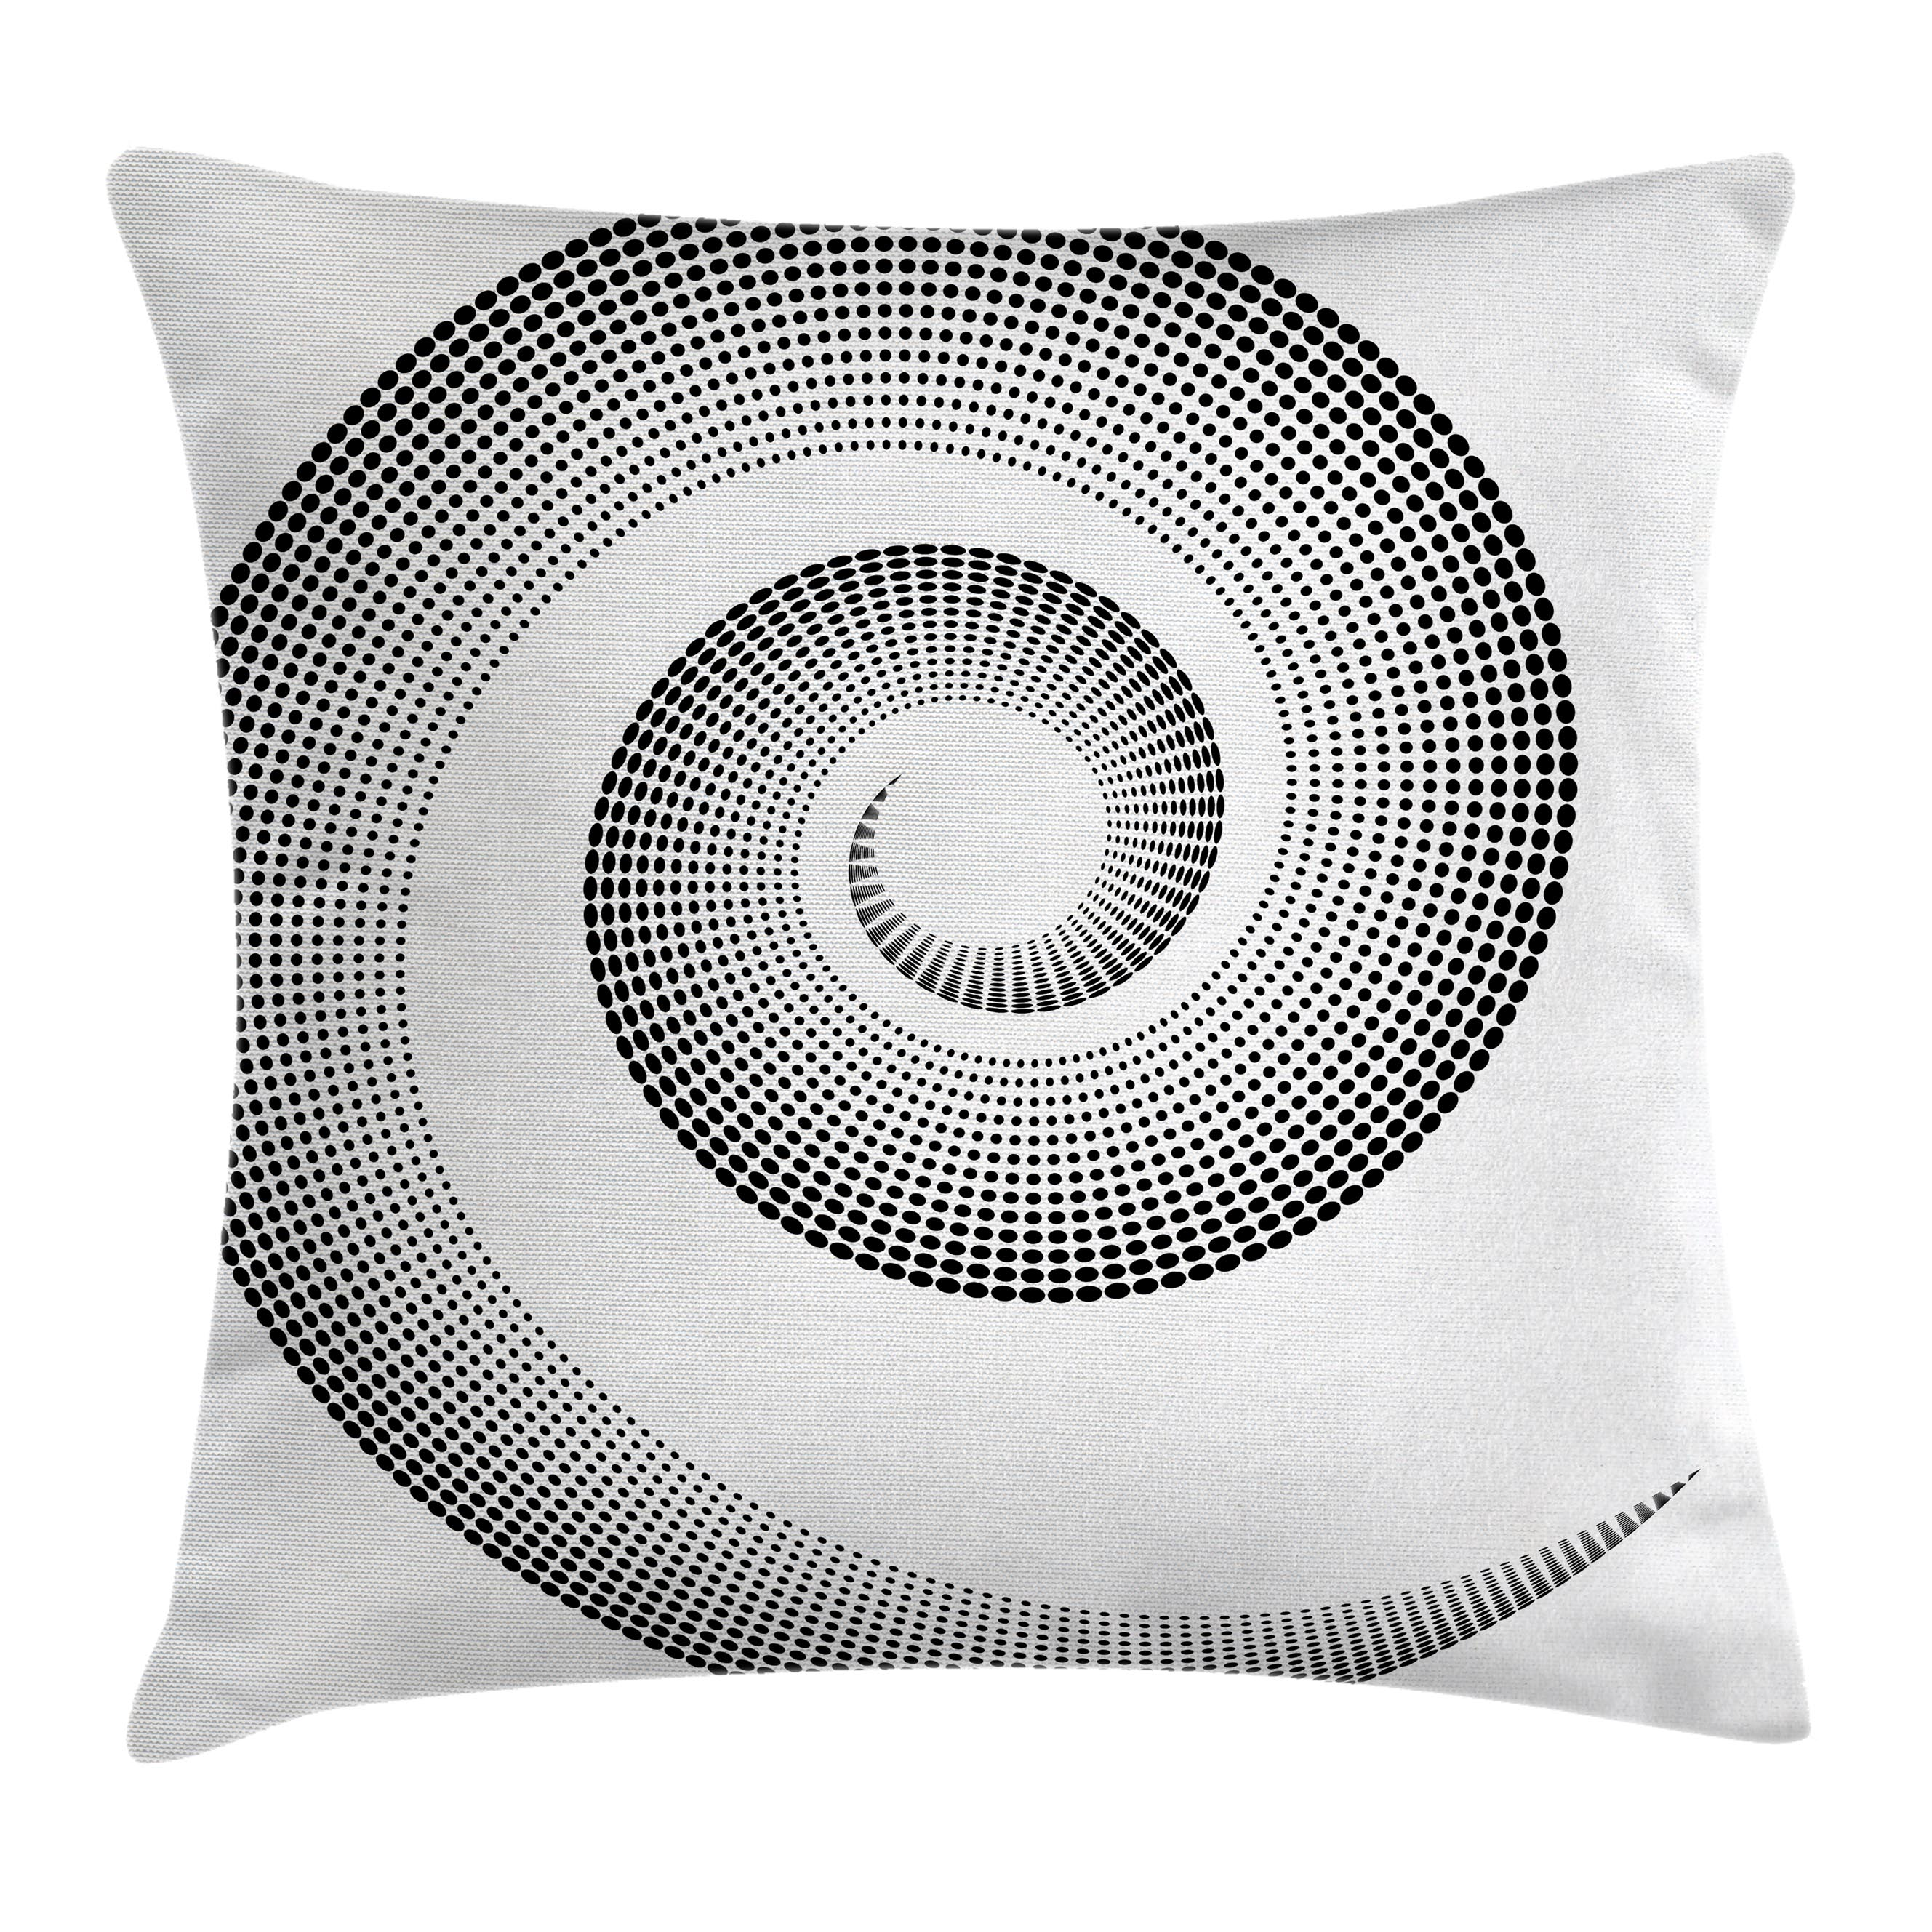 Spires Decor Throw Pillow Cushion Cover, Spiral Dimensional Curve Turns Around an Axis Rotary Parallel to Ring Center Image, Decorative Square Accent Pillow Case, 24 X 24 Inches, Black, by Ambesonne